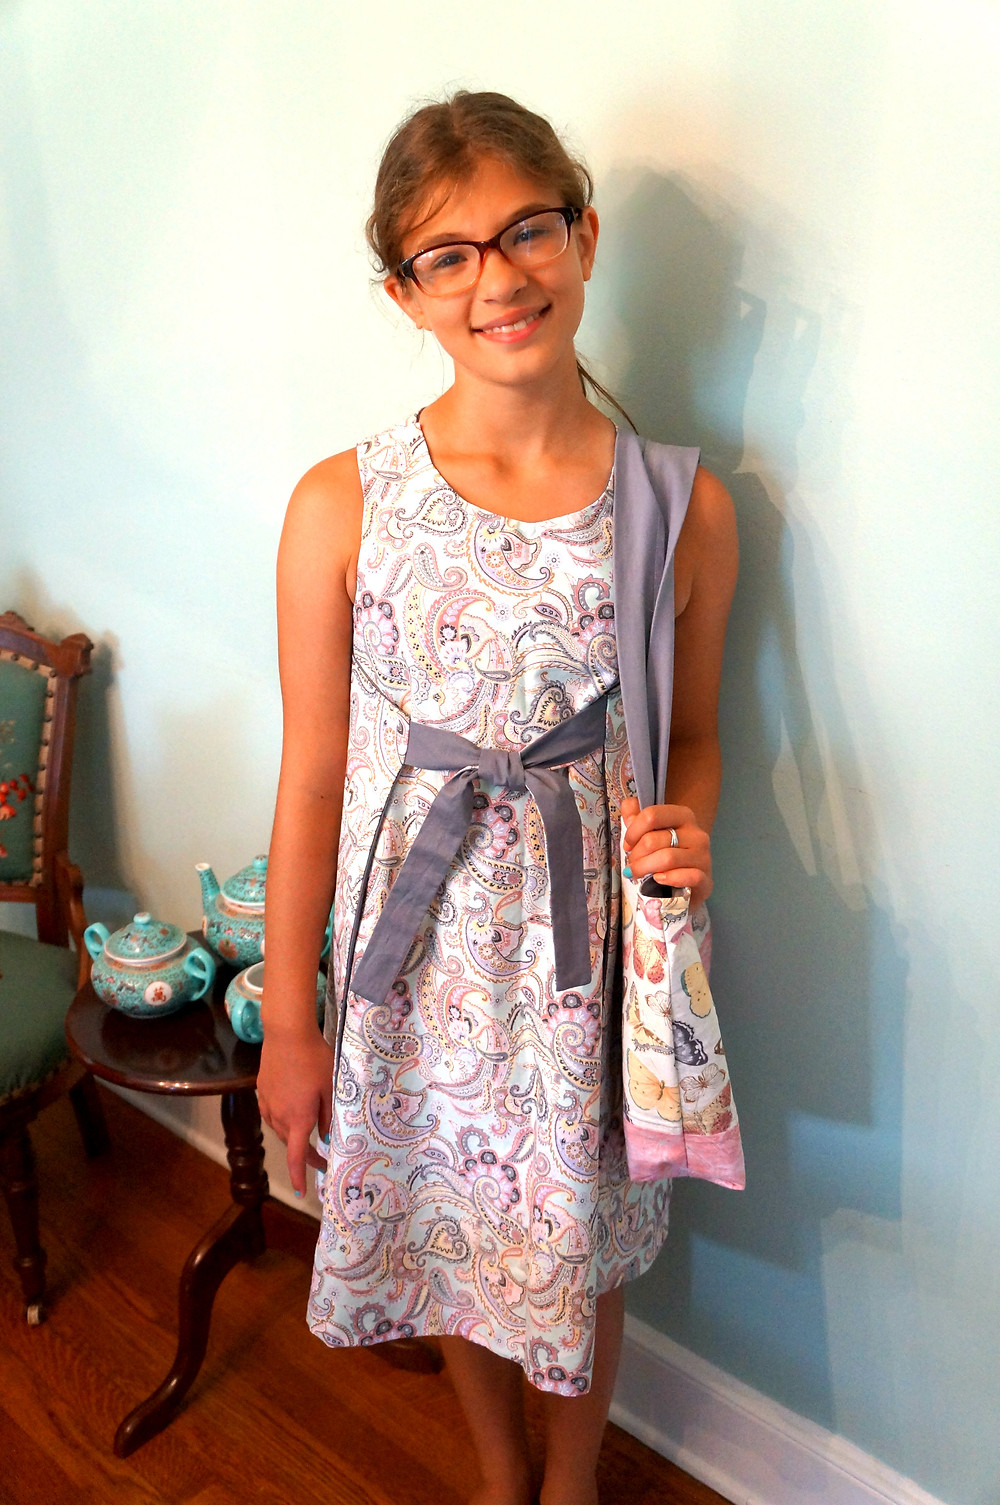 Alternative picture of K with bag and wearing finished dress